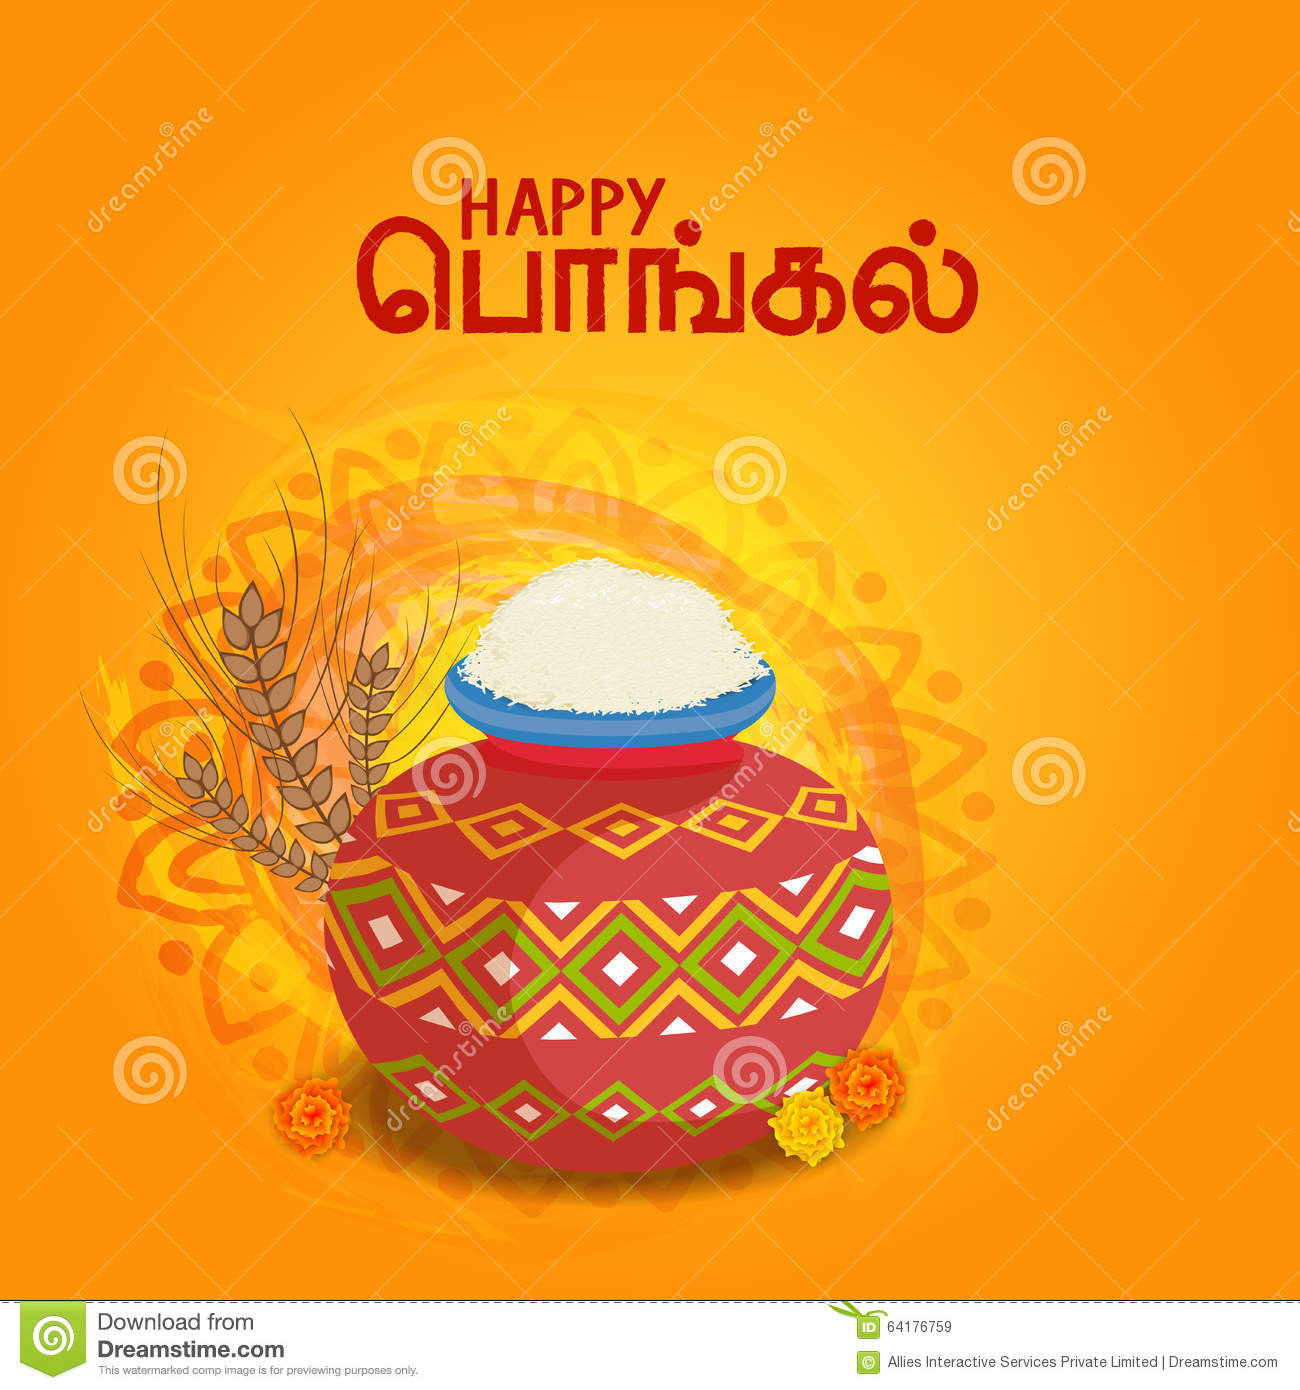 Happy Pongal Celebration Greeting Card Design Stock Illustration